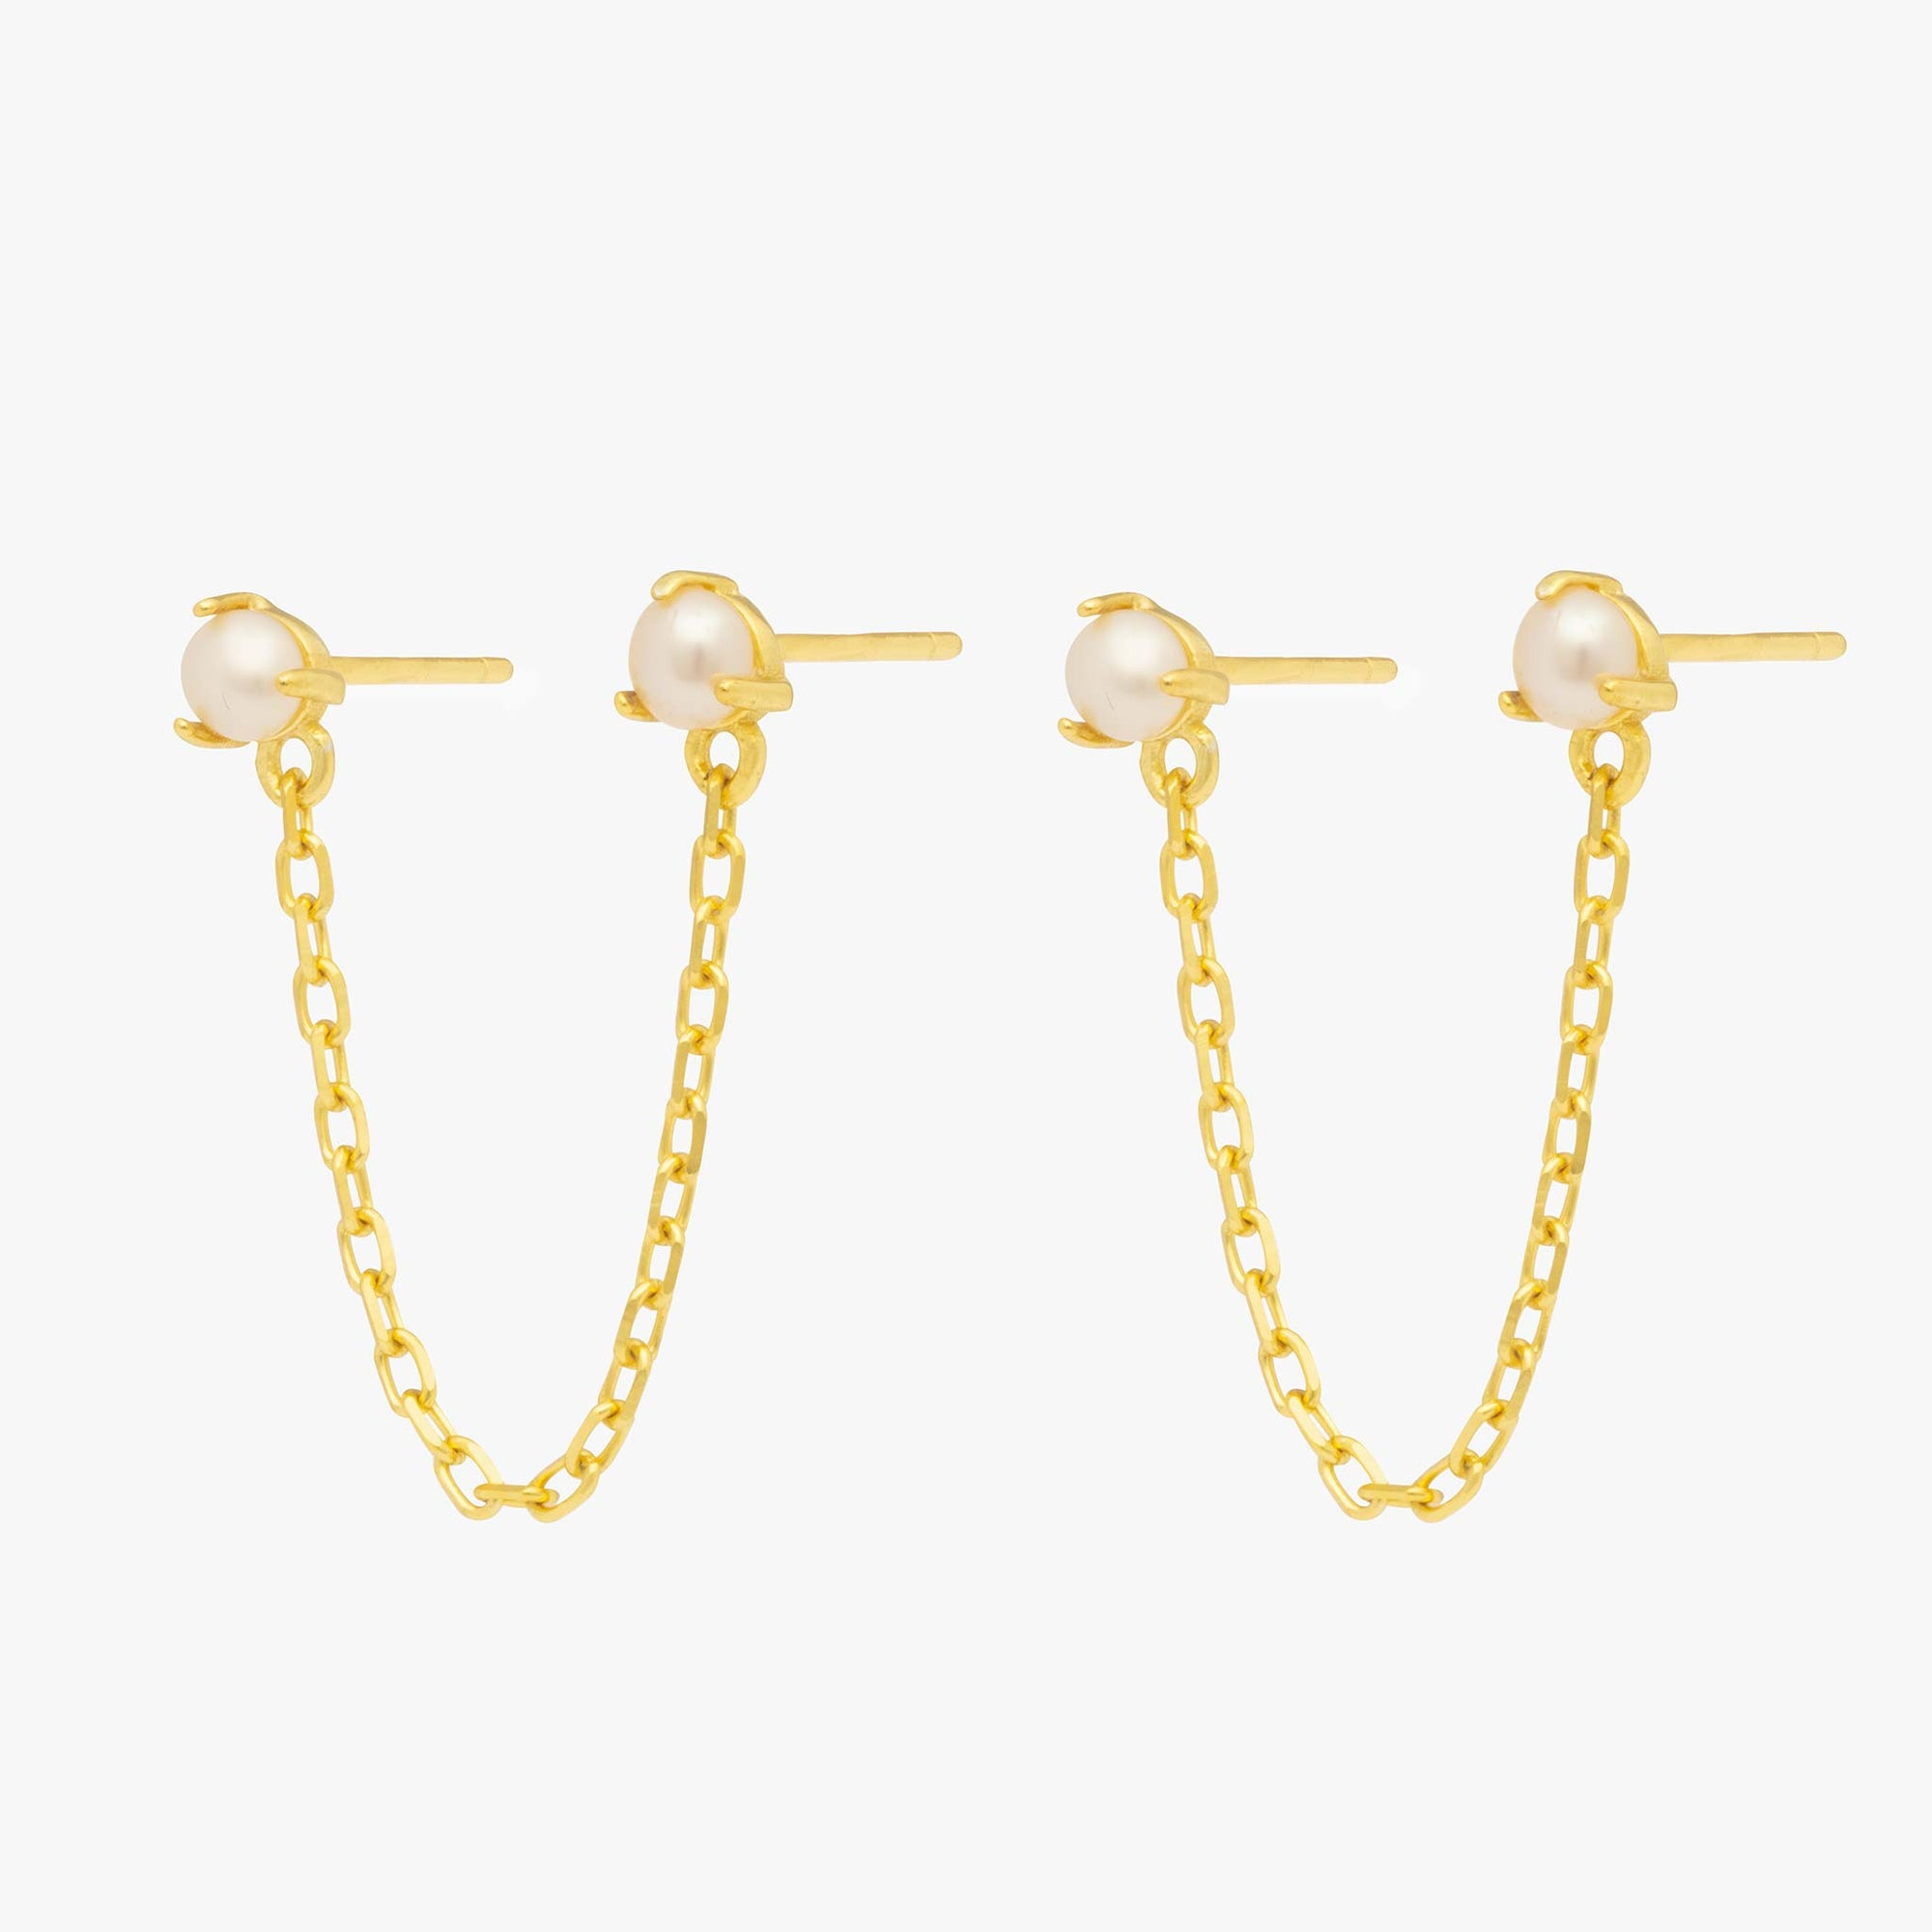 Two pearl studs linked by a gold chain.